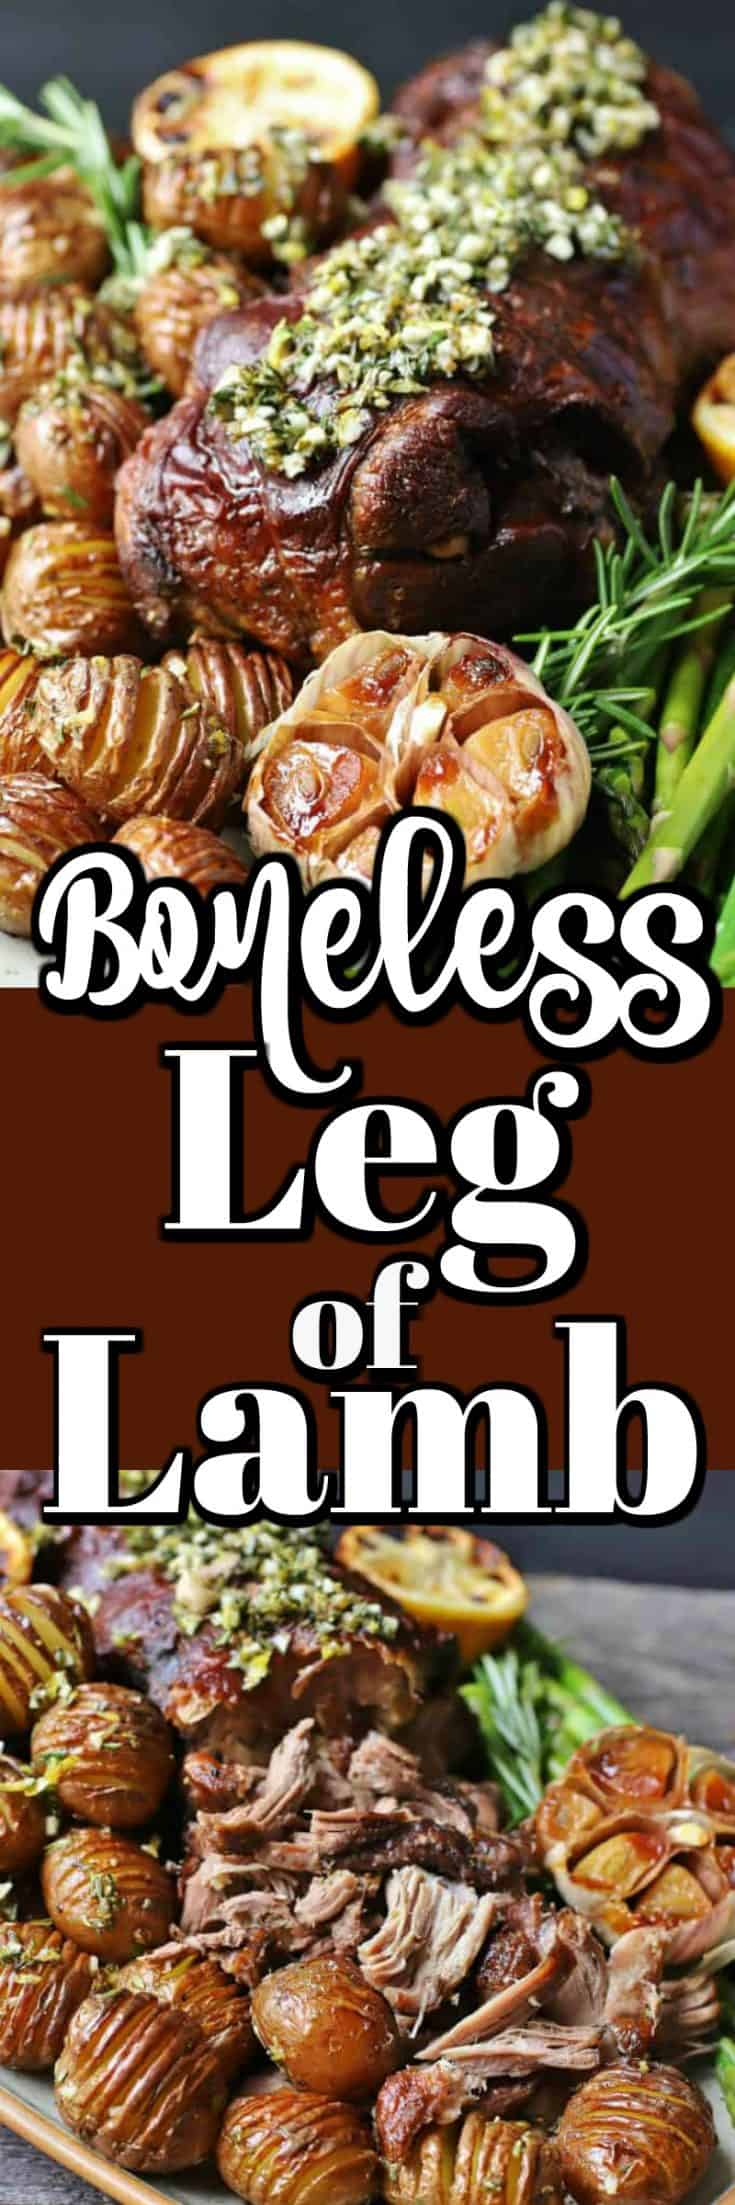 Slow Roasted Boneless Leg of Lamb can be your Easter dinner or just one of the best dinner recipes you have tried or made. #lamb #legoflamb #bonelesslamb